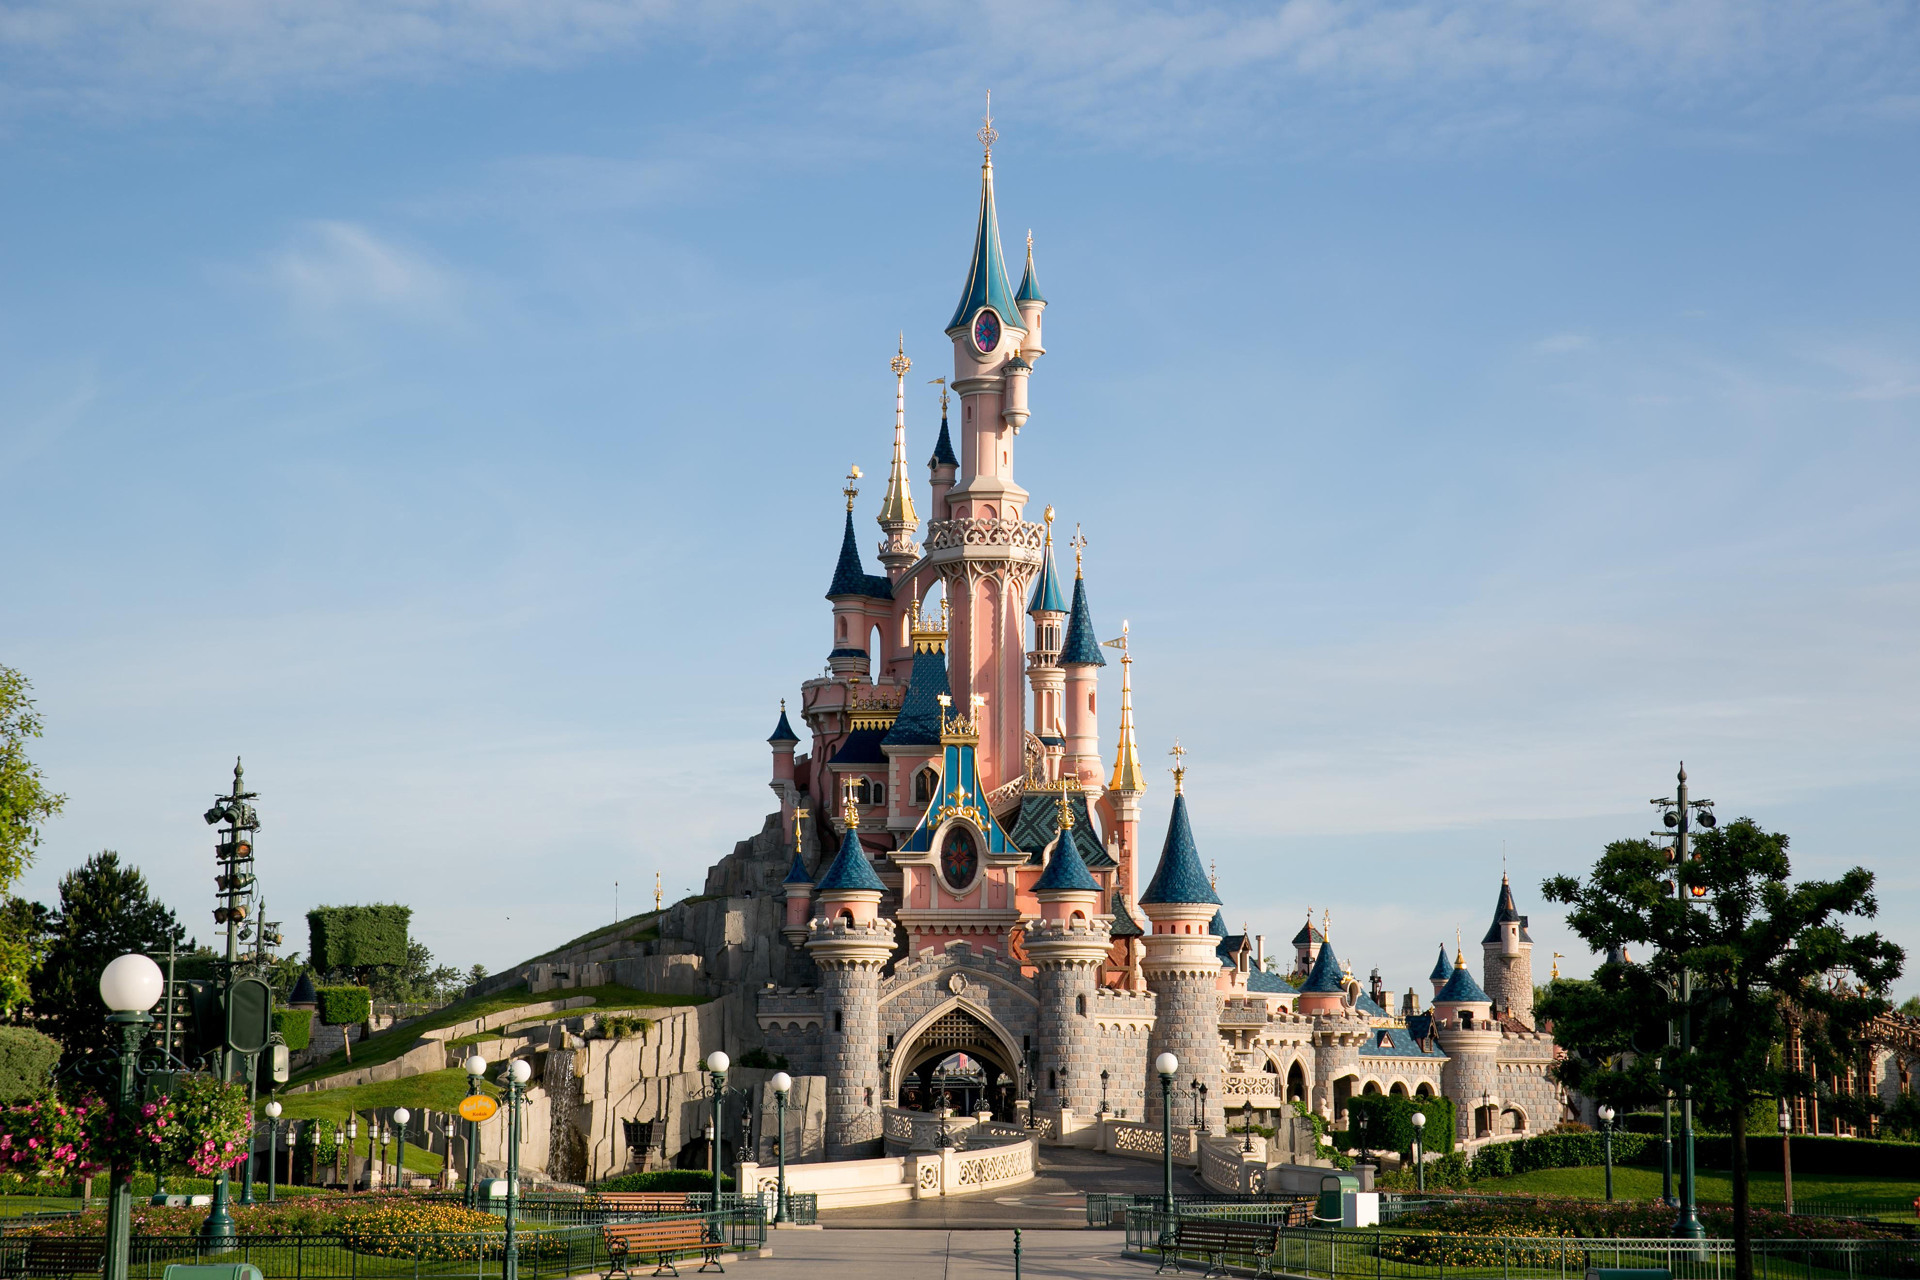 Chateau de disneyland paris